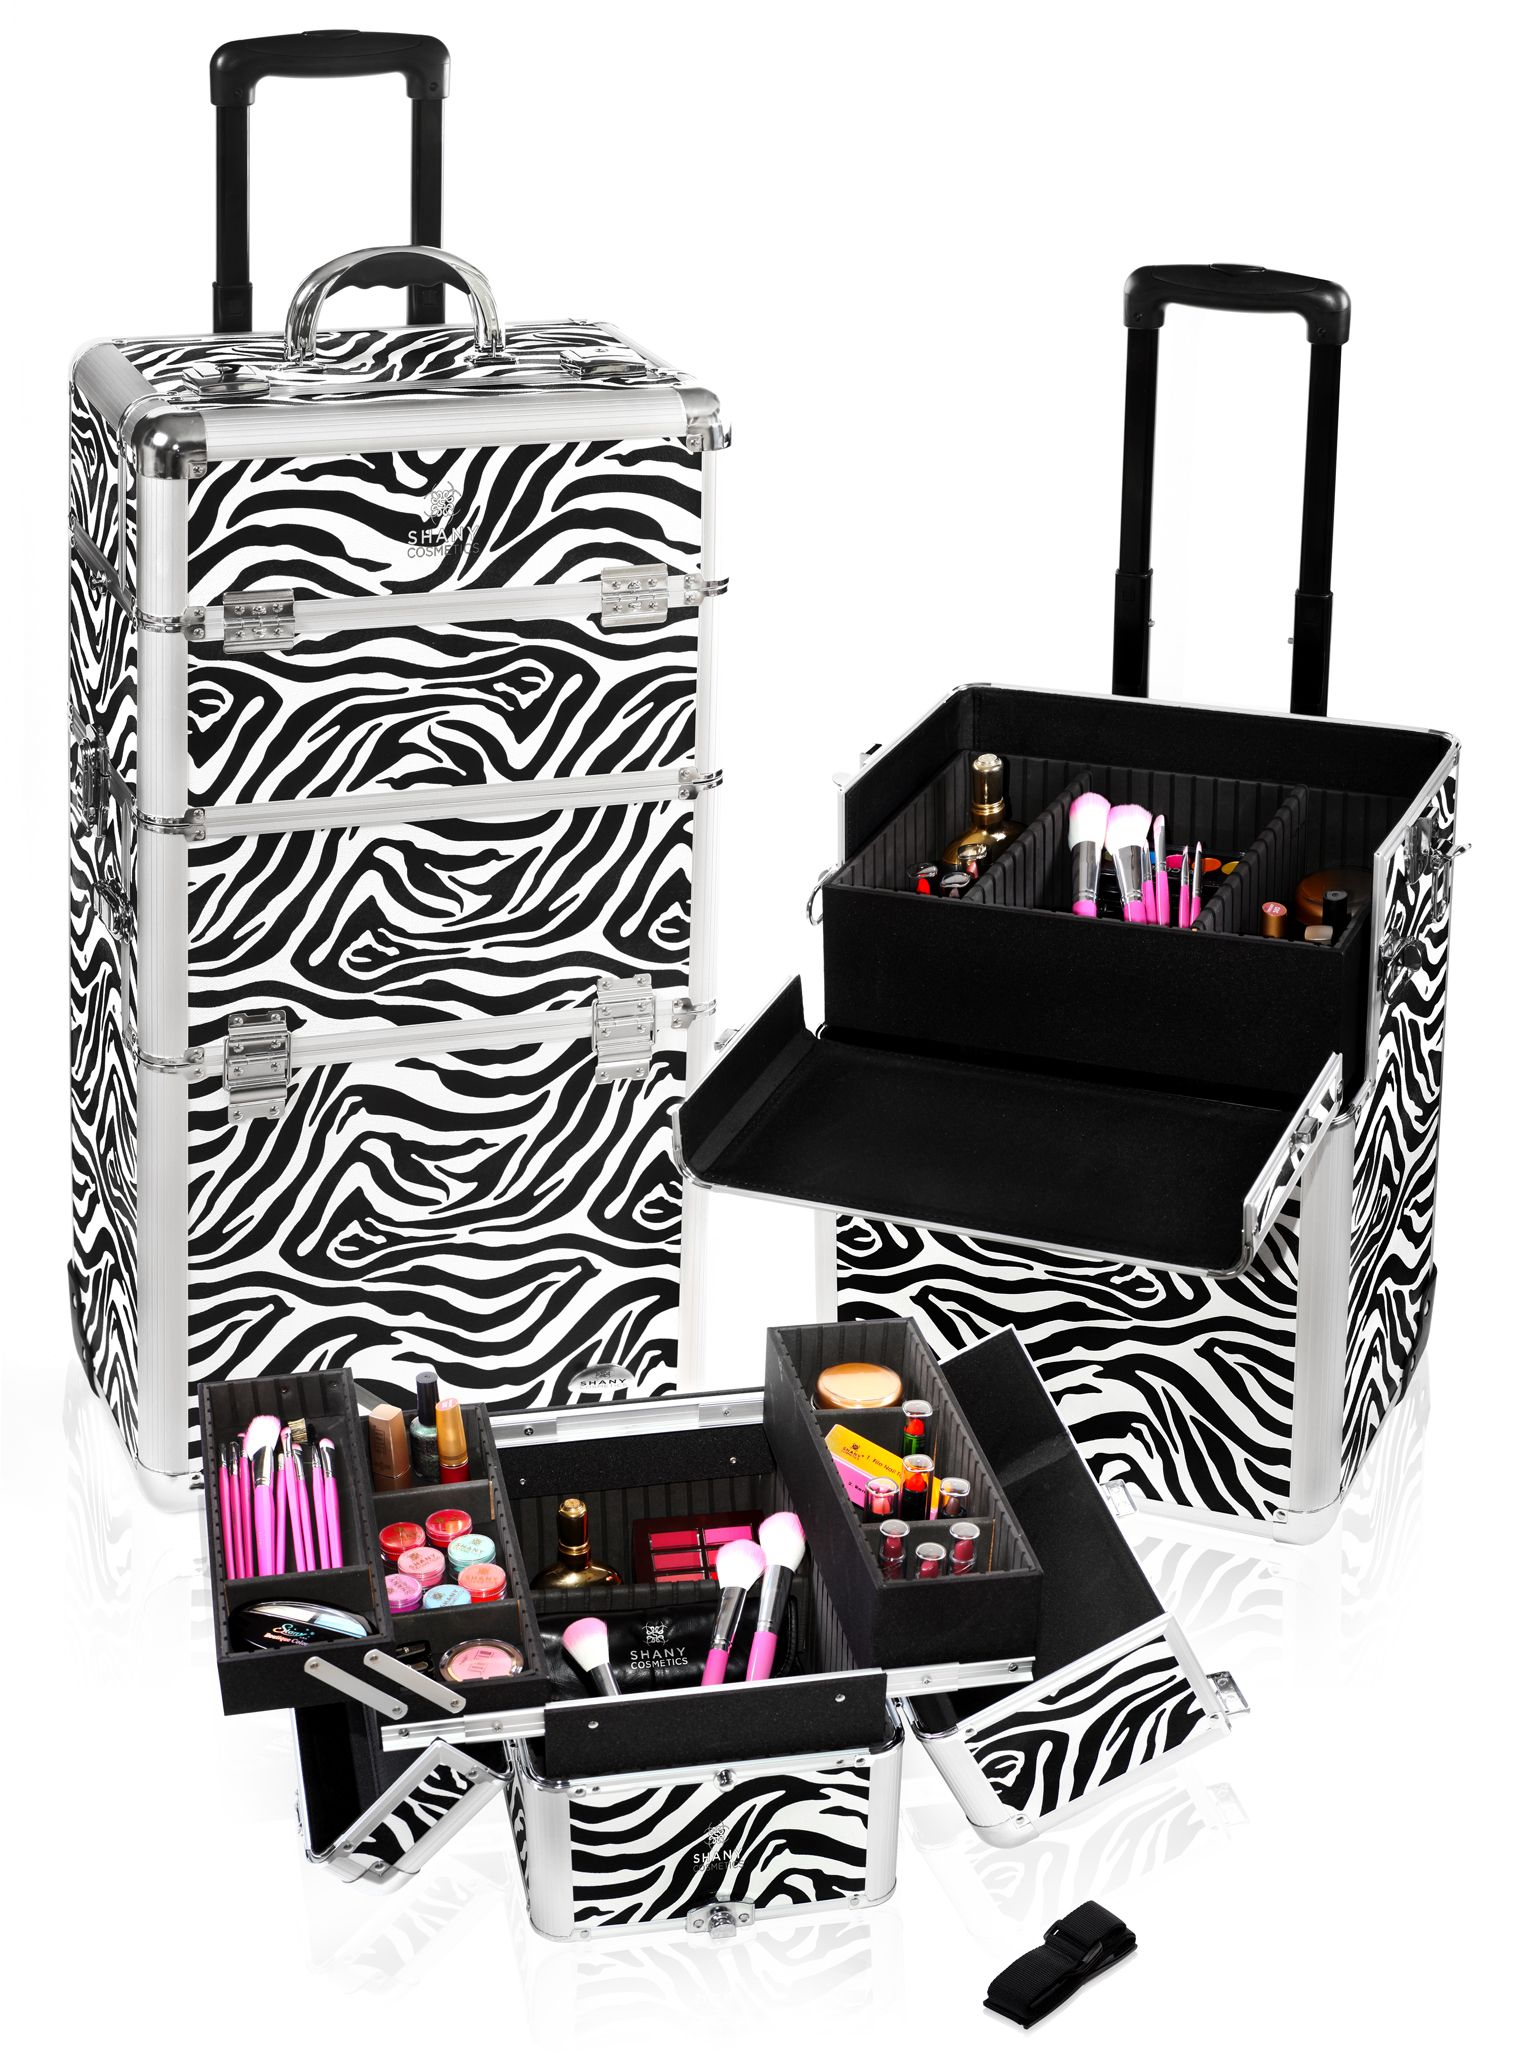 Zebra Trolley Case. 200 Makeup case, Professional